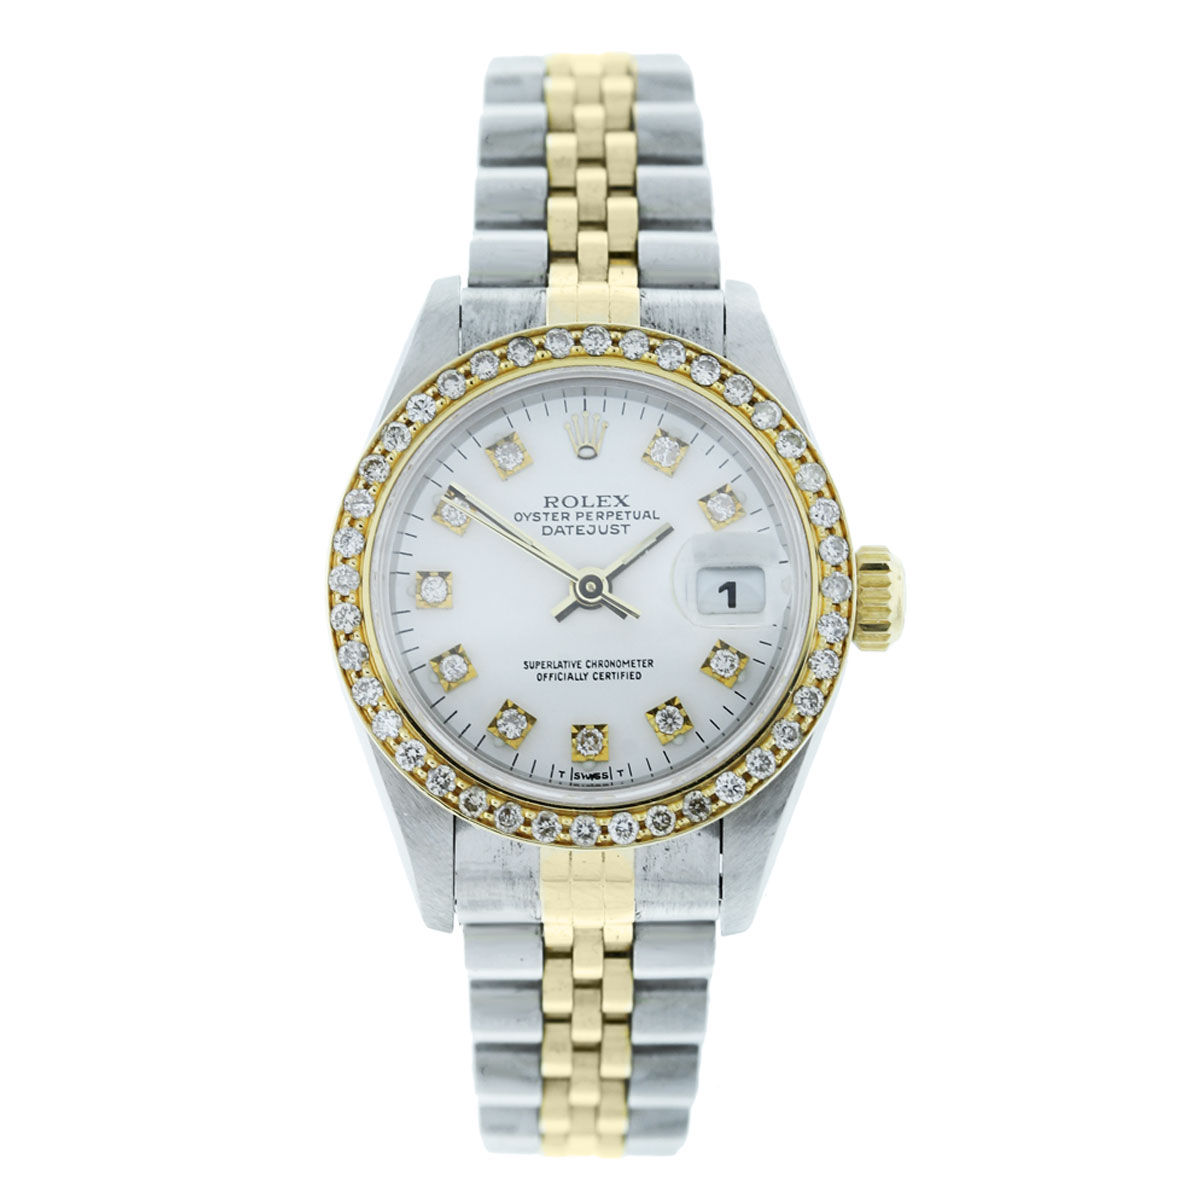 Rolex datejust 69173 diamond dial bezel ladies watch for Diamond dial watch